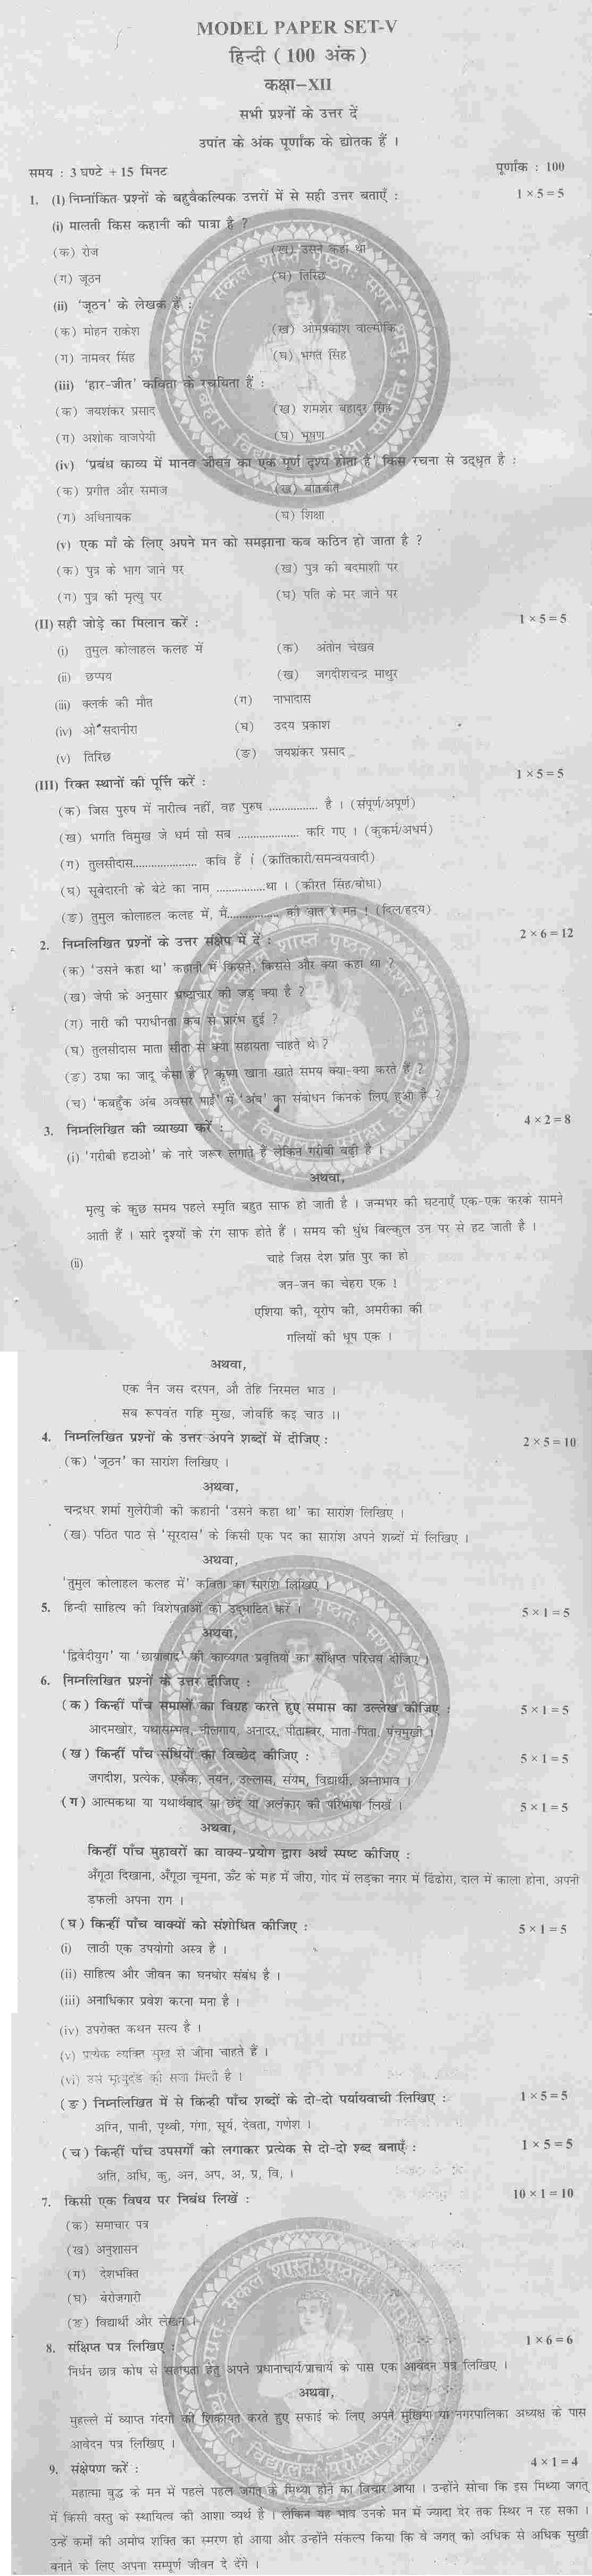 Bihar Board 12th Model Paper Hindi | BSEB Model Paper with ...